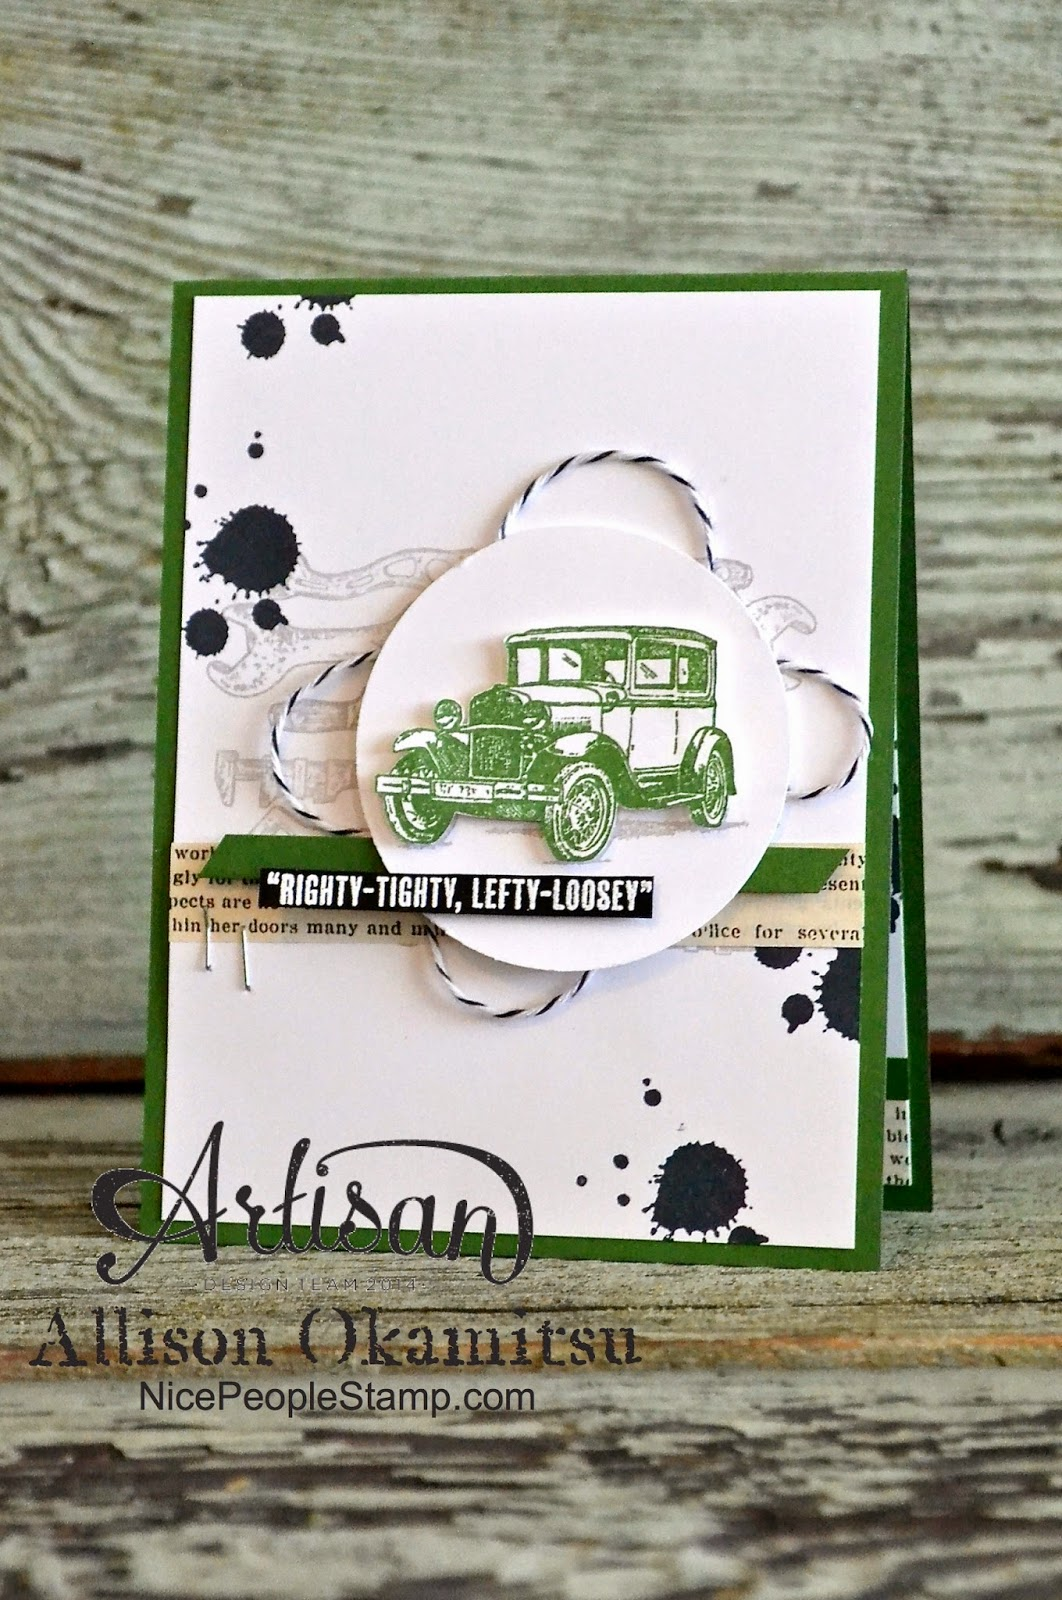 Nice people stamp stampin up canada guy greetings stampin up welcome to the stampin up artisan design team blog hop the team has some fabulous creations to share with you this week featuring the guy greetings stamp kristyandbryce Images